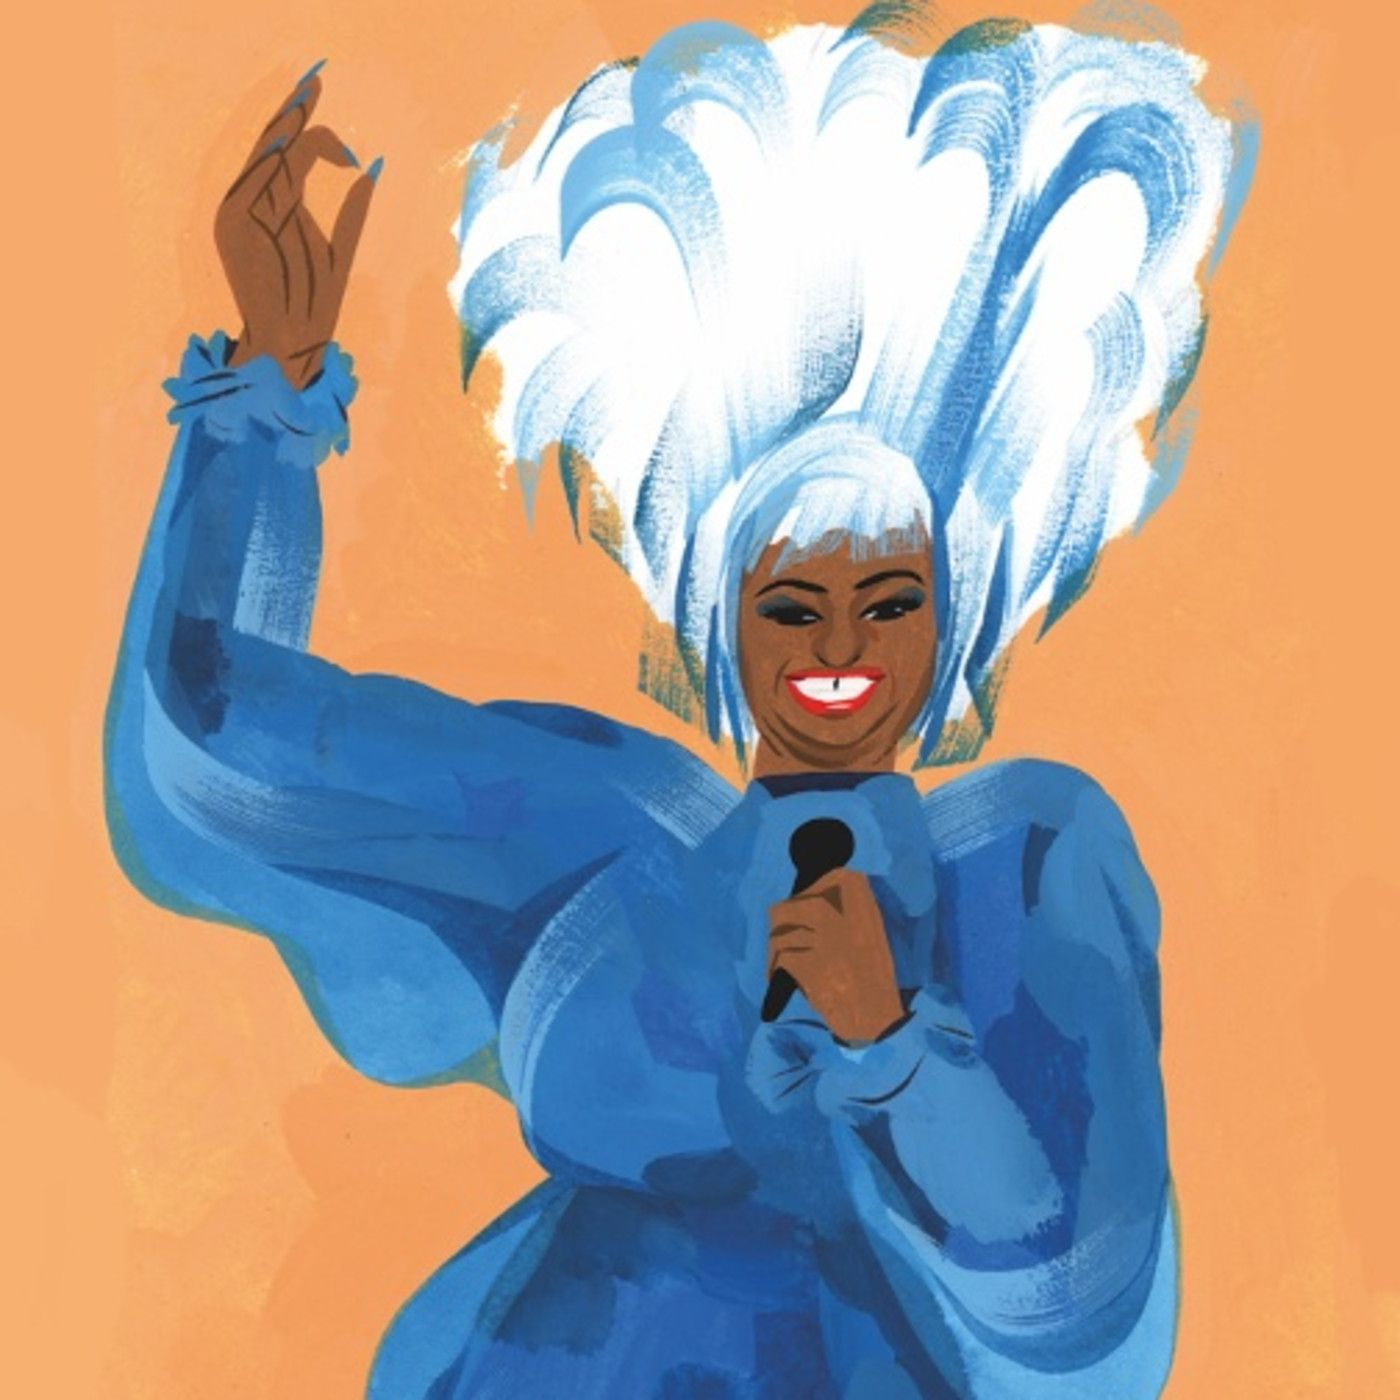 Best of Rebel Girls: Celia Cruz read by Justina Machado